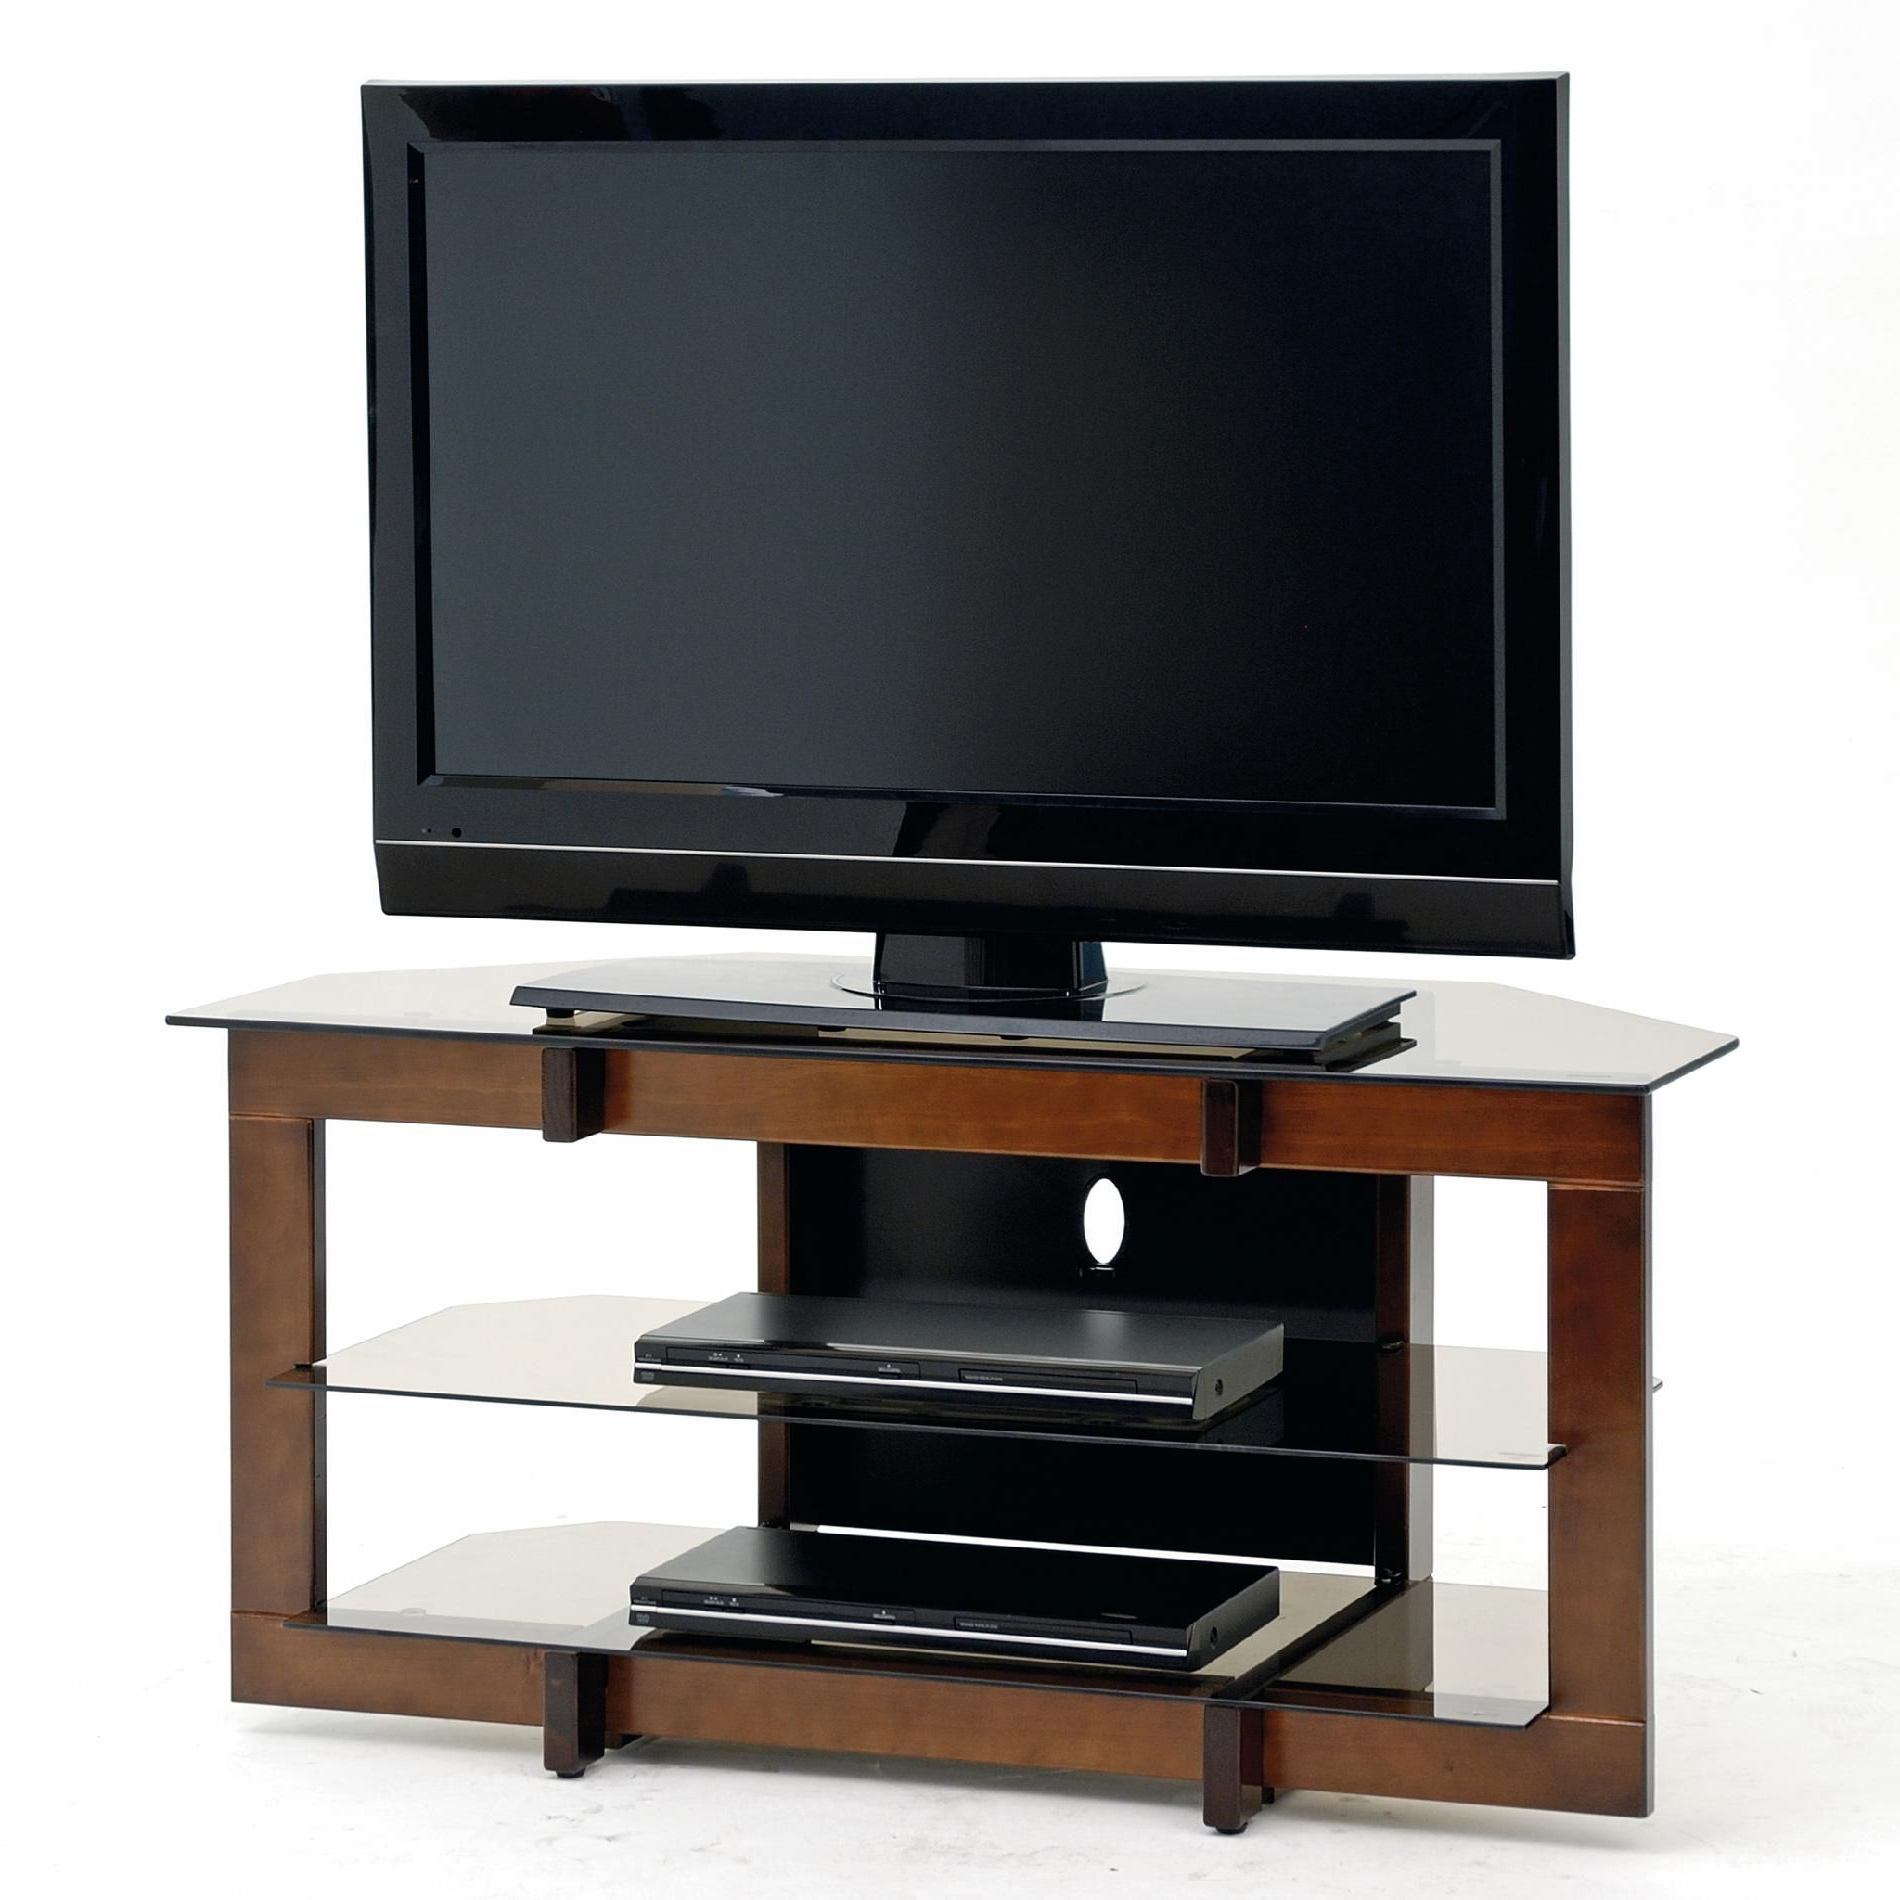 Awesome Best Oak And Glass Tv Stand In 2020   Tv Ecke, Tv Throughout Contemporary Black Tv Stands Corner Glass Shelf (View 1 of 20)